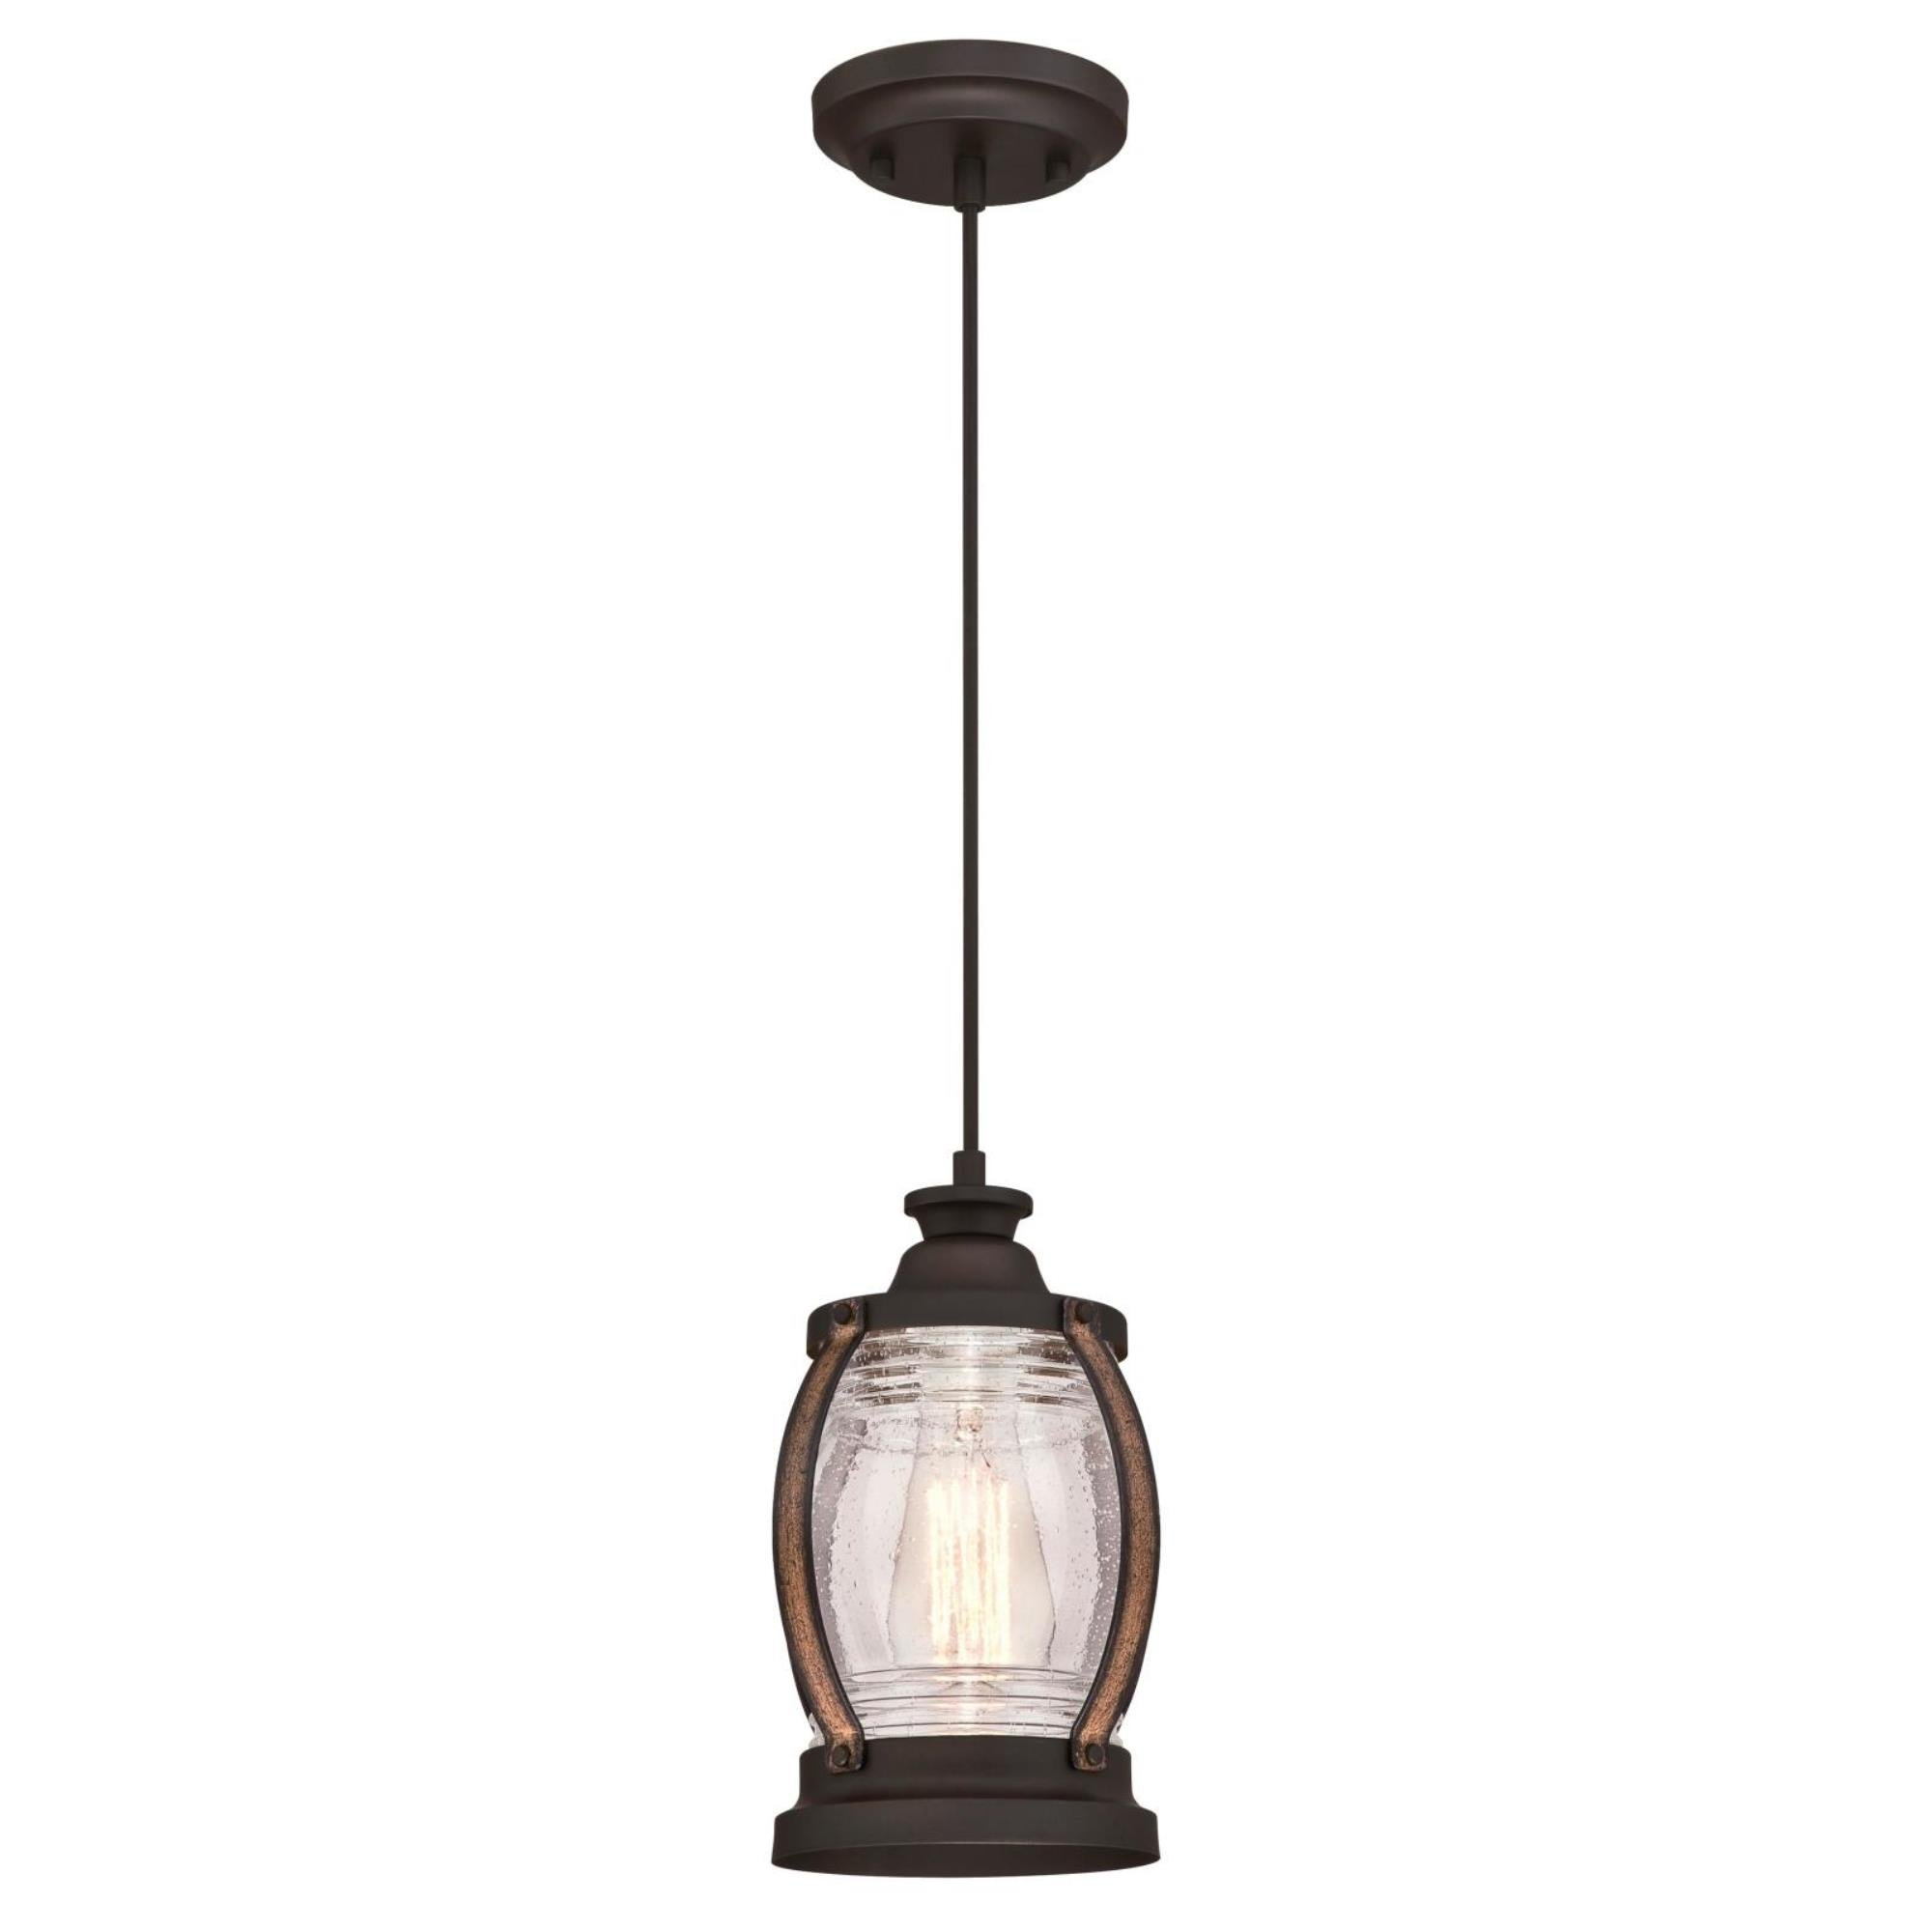 Westinghouse 6361700 Canyon One-Light Mini, Oil Rubbed Bronze Finish with Barnwood Accents and Clear Seeded Glass Indoor Pendant